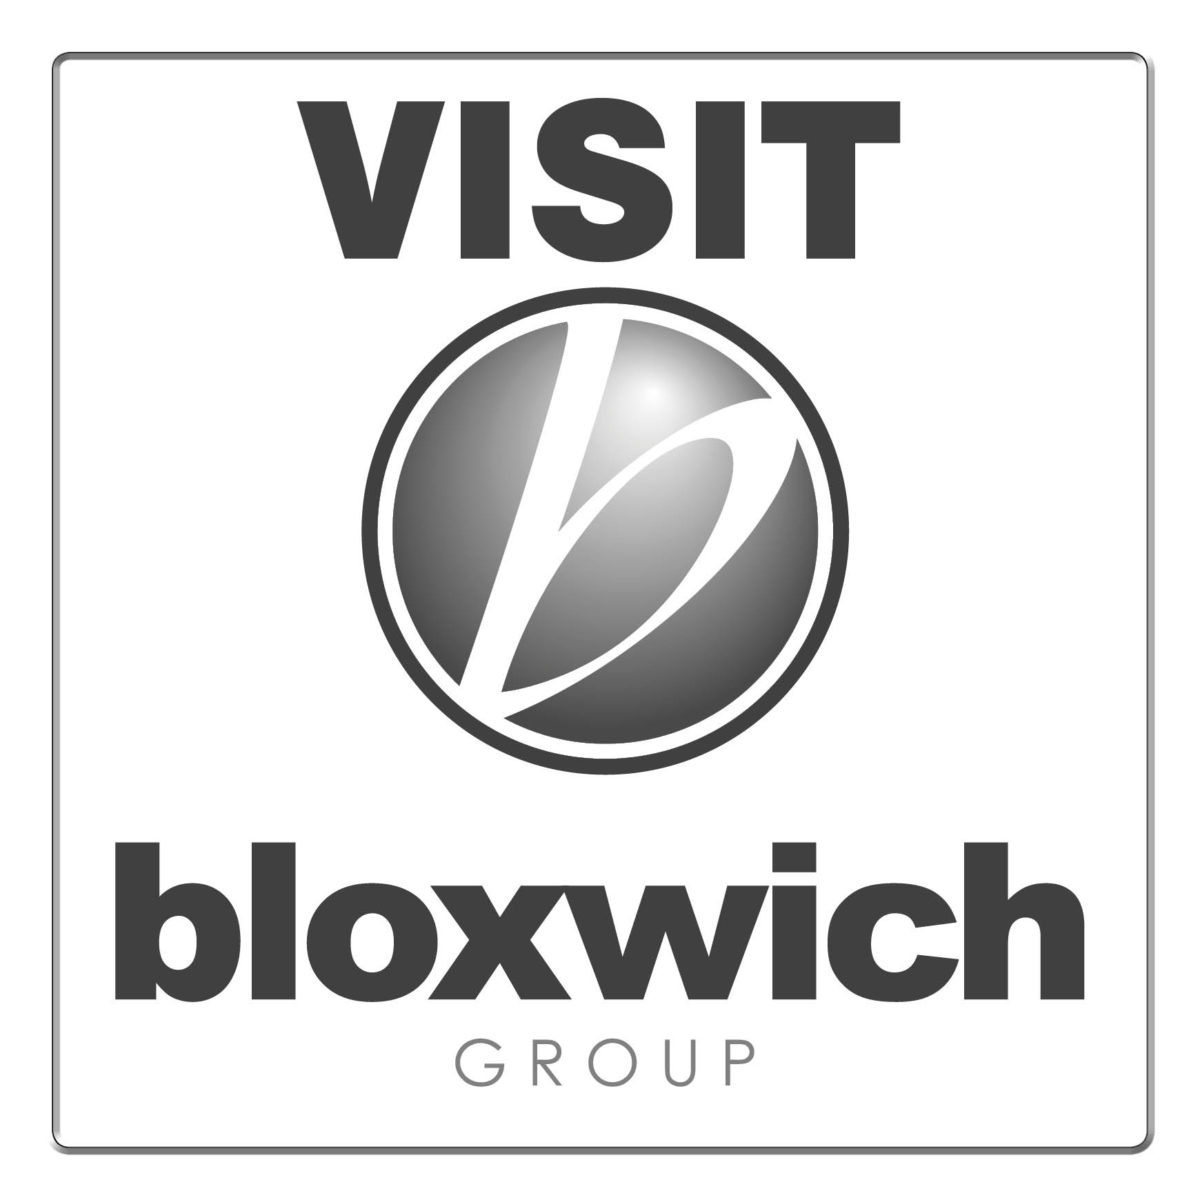 Click here to visit the new bloxwich group website icon